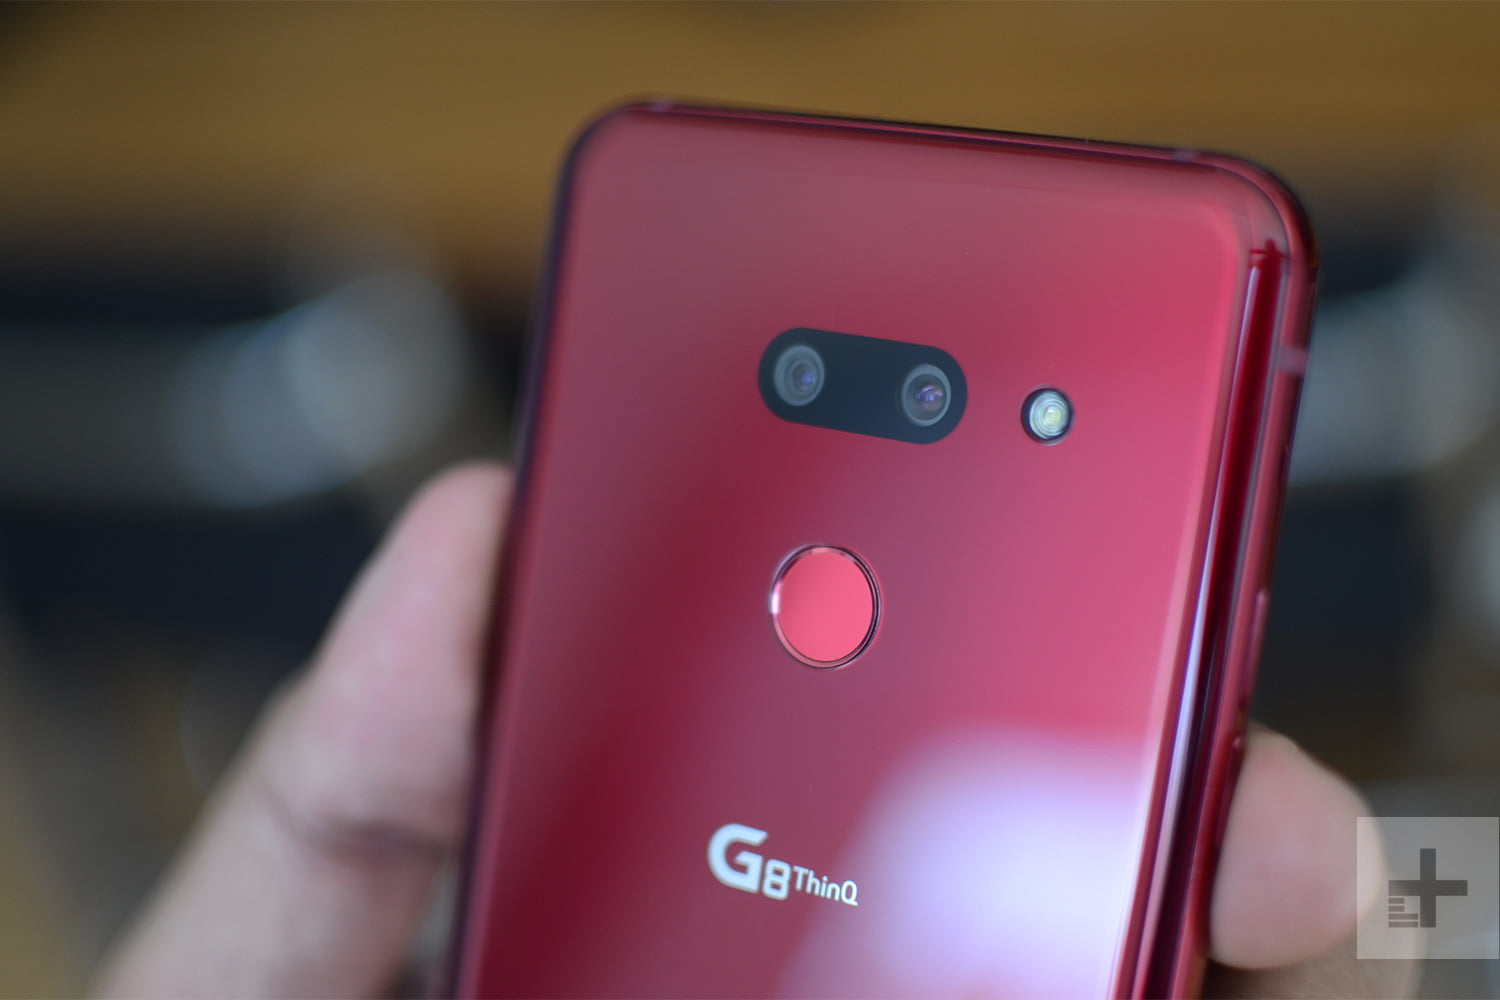 LG G8 ThinQ: 11 Key Settings To Change On Your New Phone